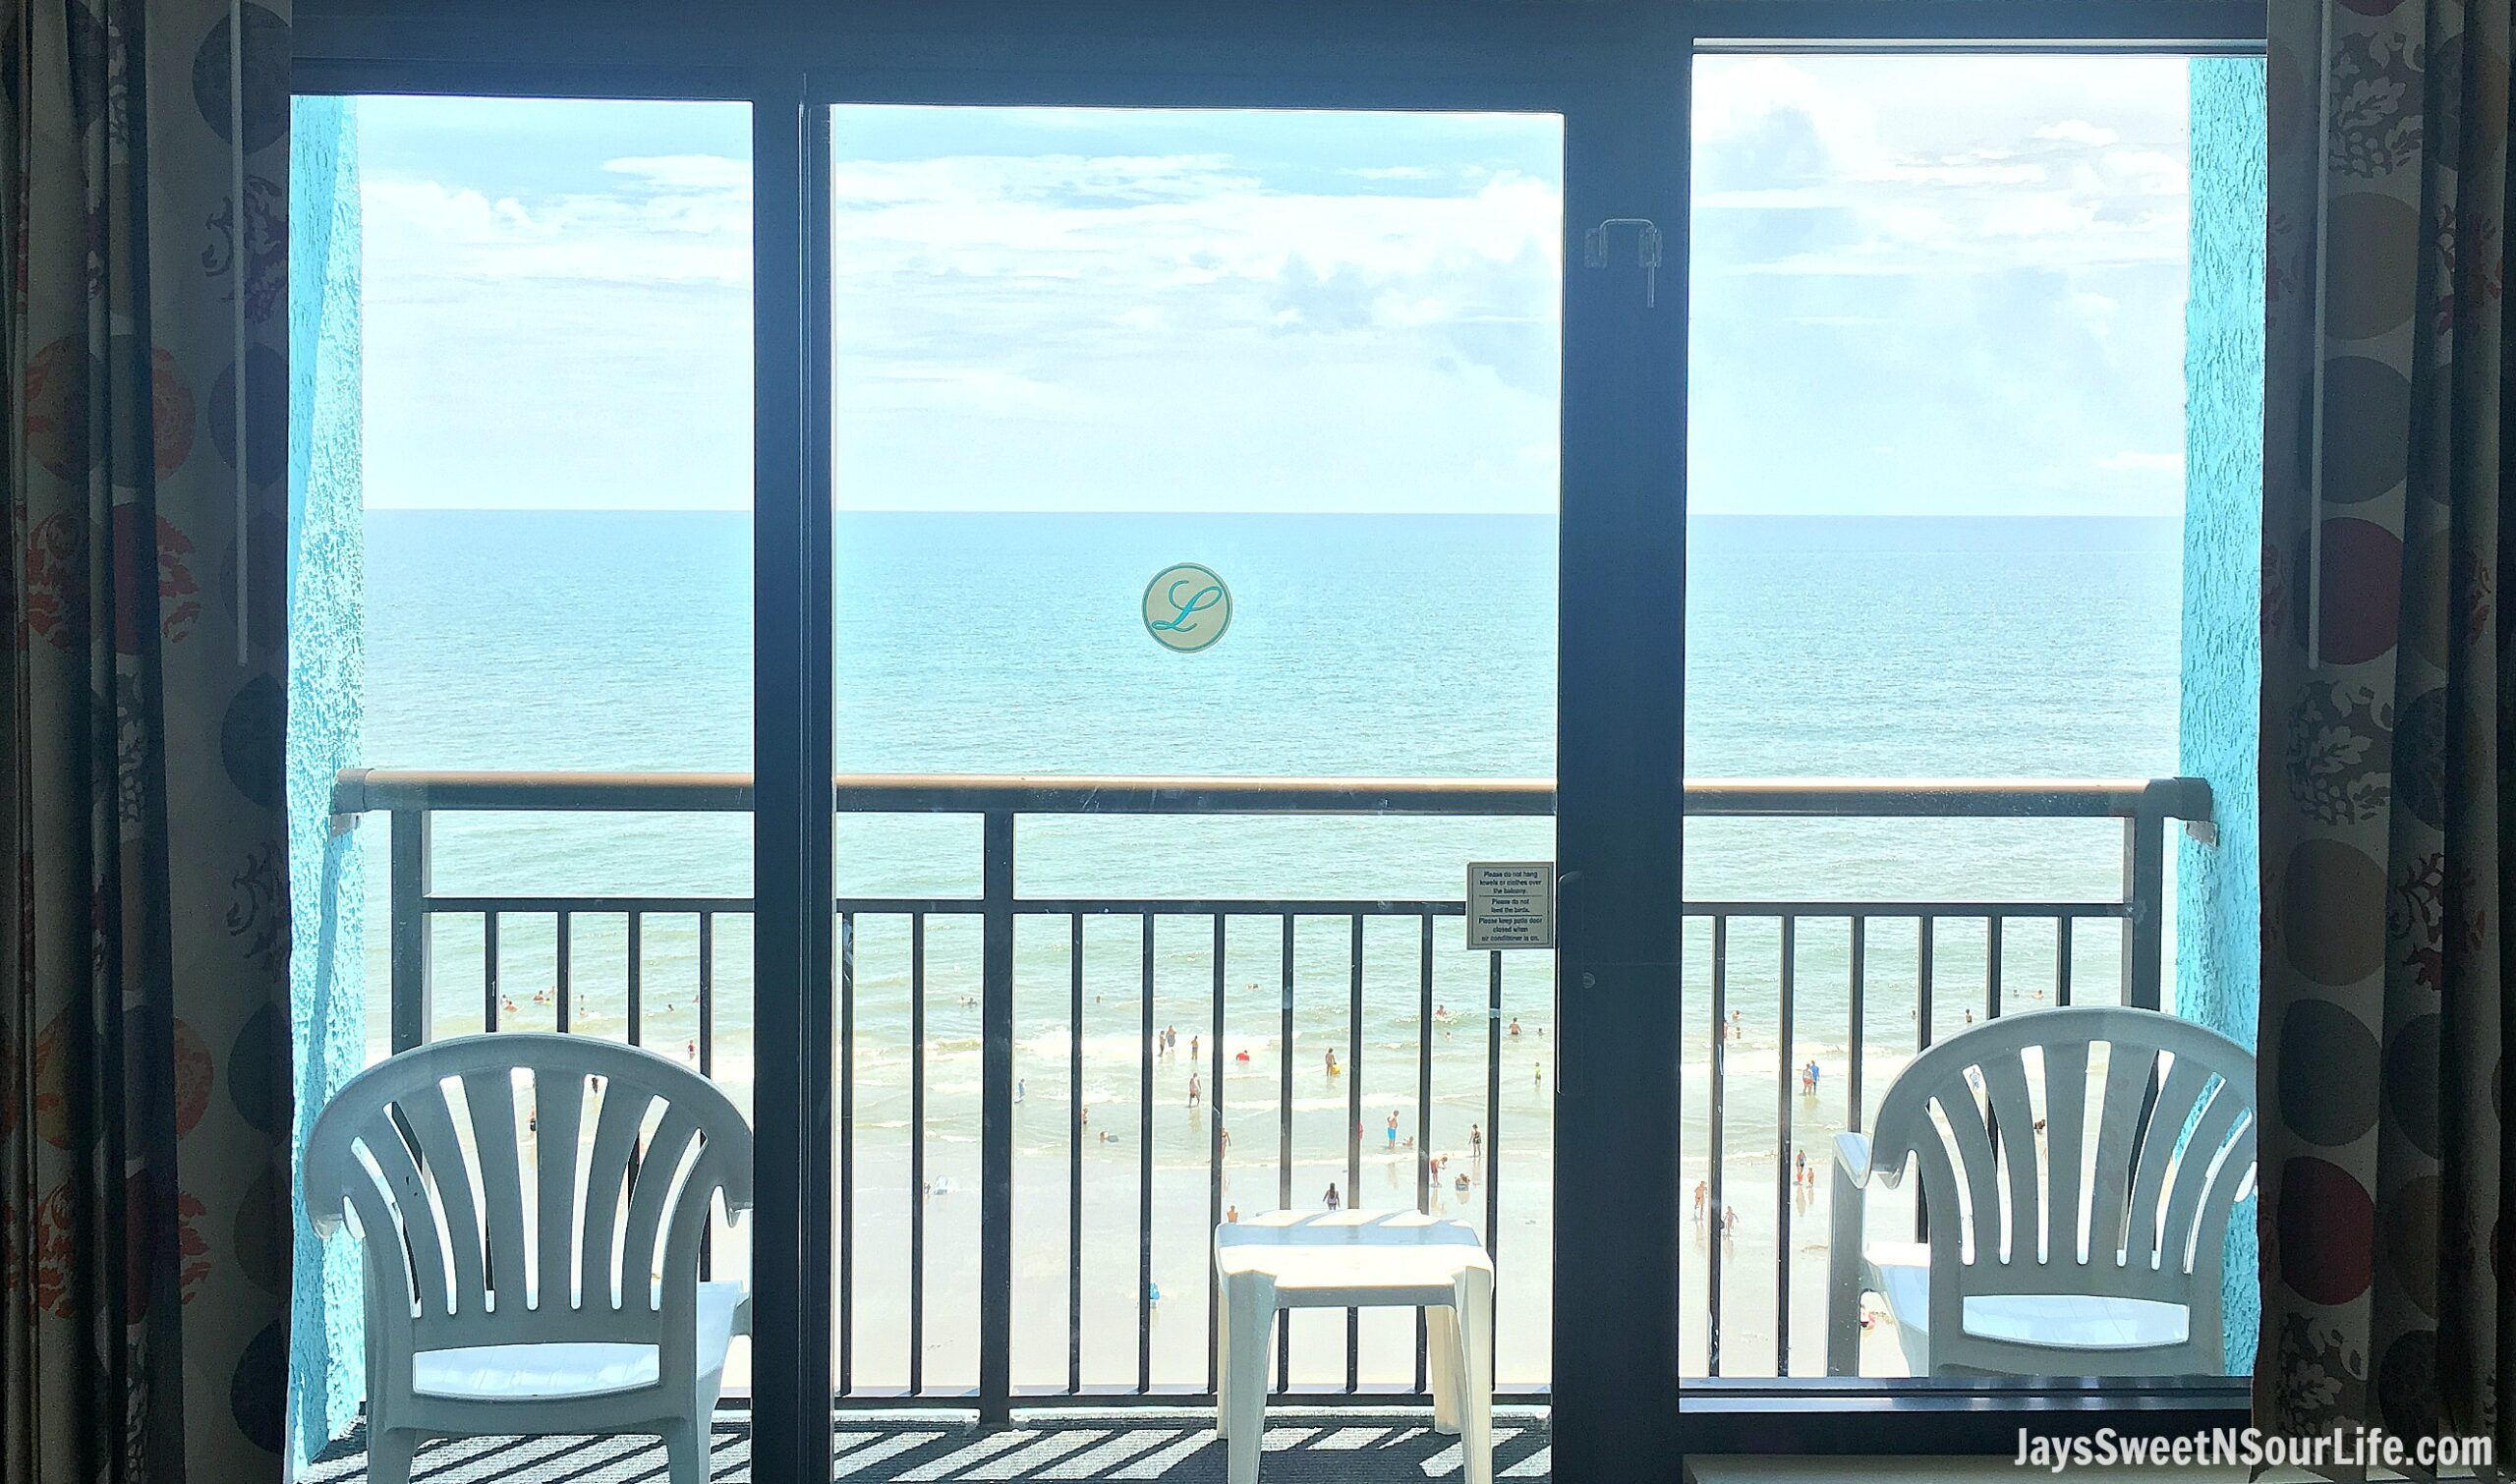 Landmark Resort Review – Myrtle Beach